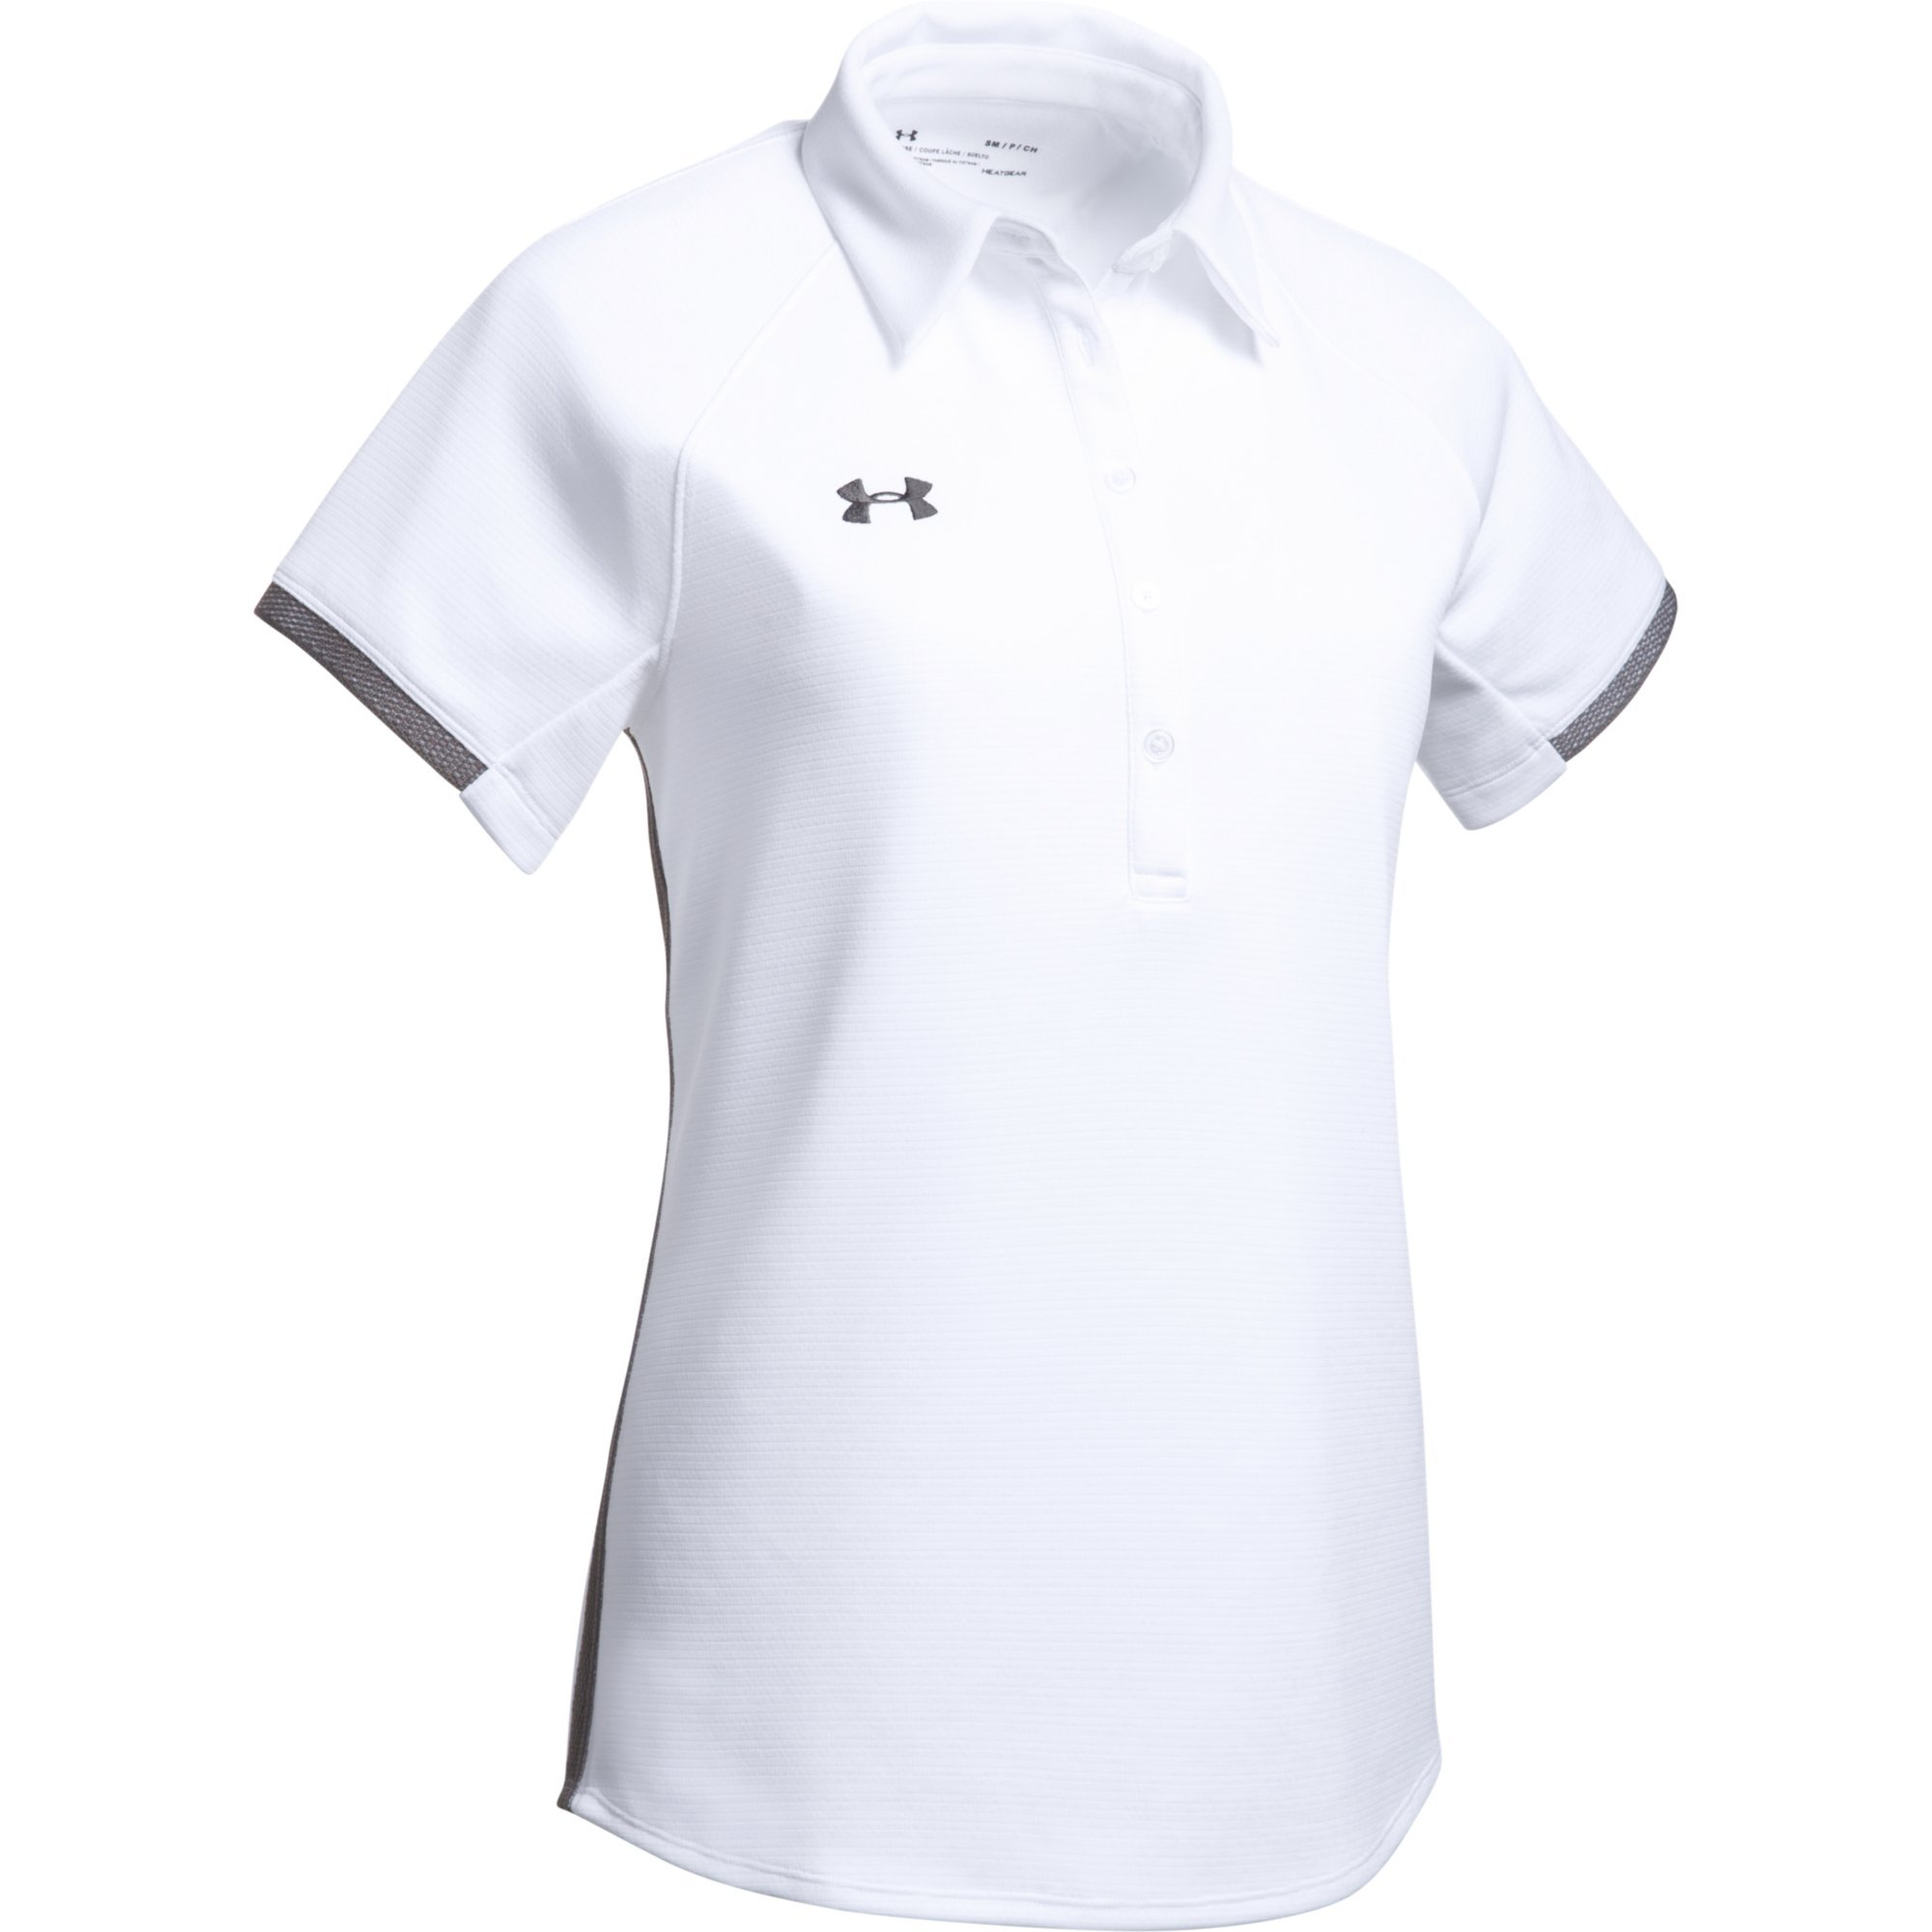 Under Armour Women's UA Rival Polo (XX-Small, White) by Under Armour